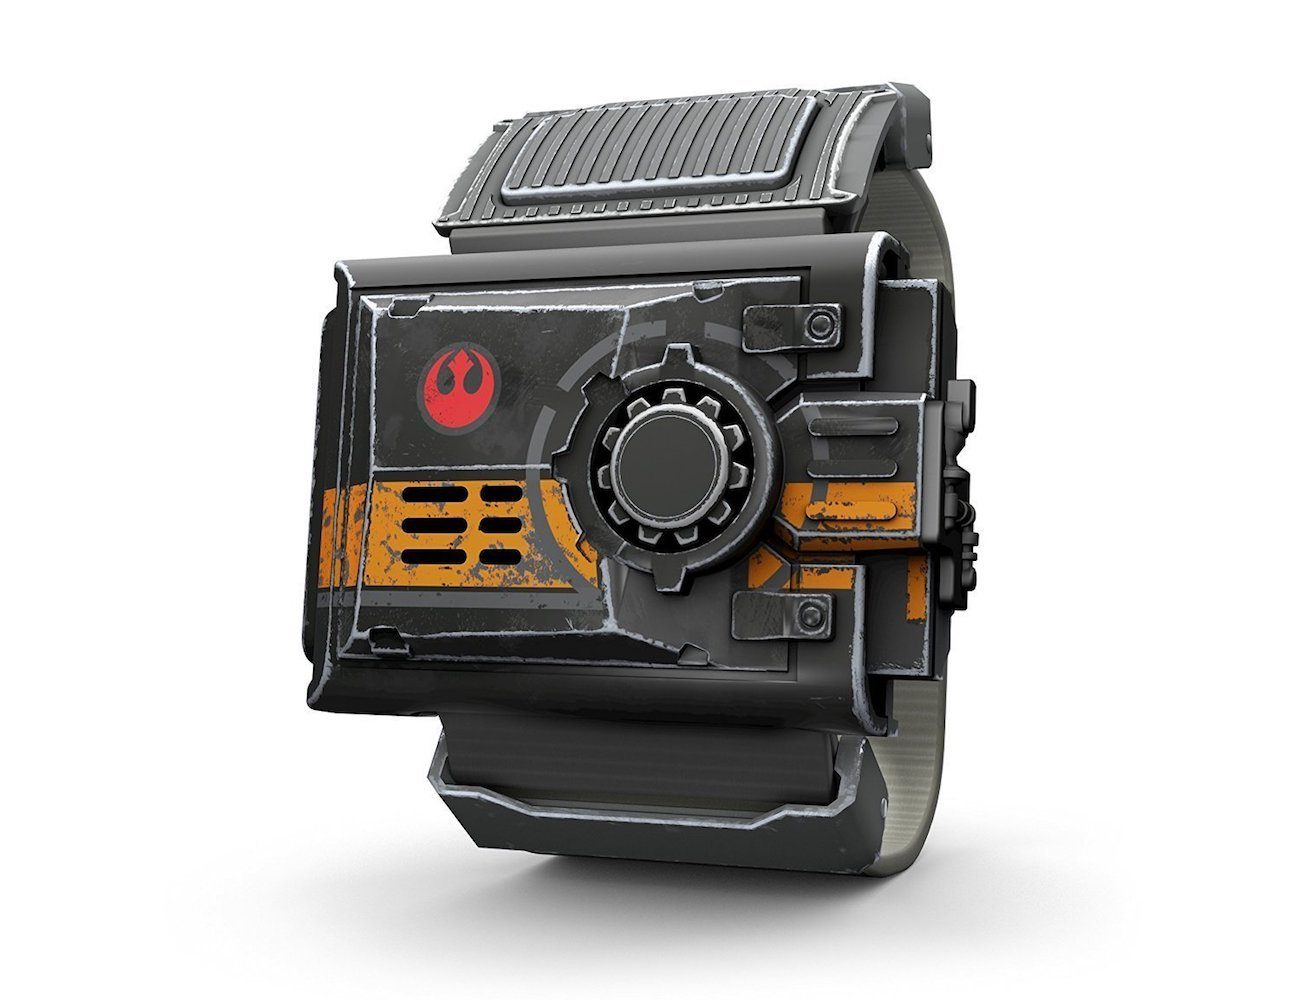 Star Wars Sphero Force BB-8 Controller Band